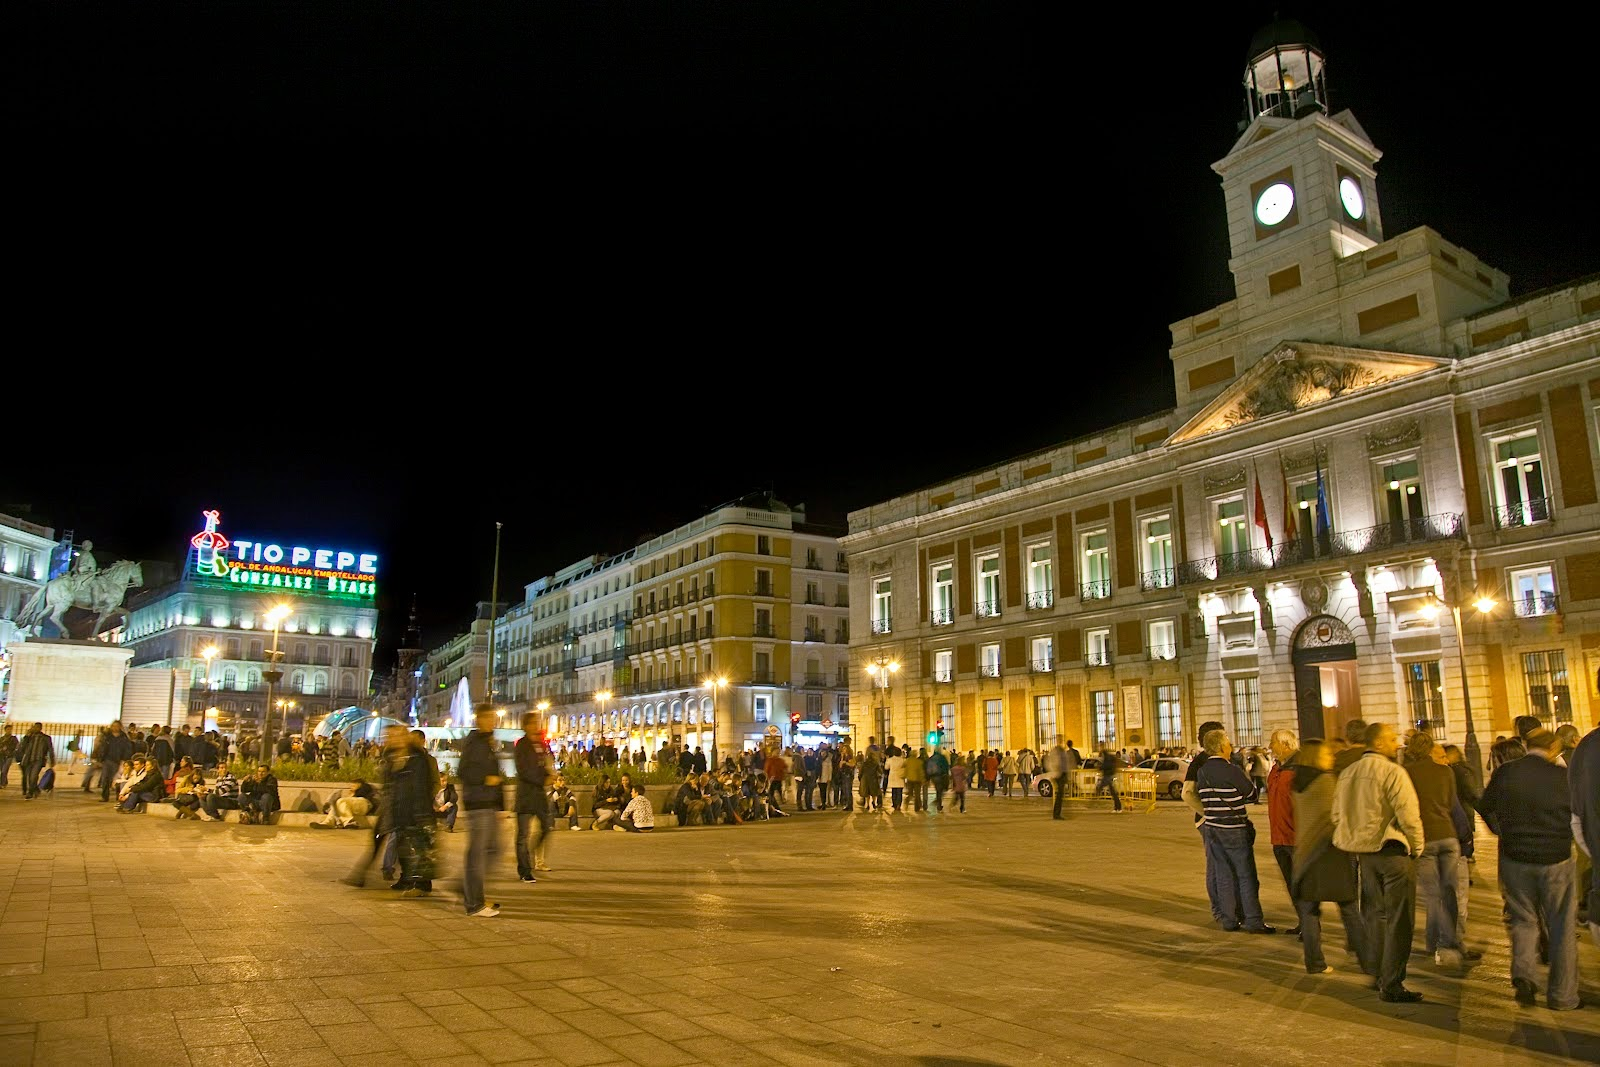 Amazing place site of day puerta del sol madrid spain for Puerta del sol 9 madrid